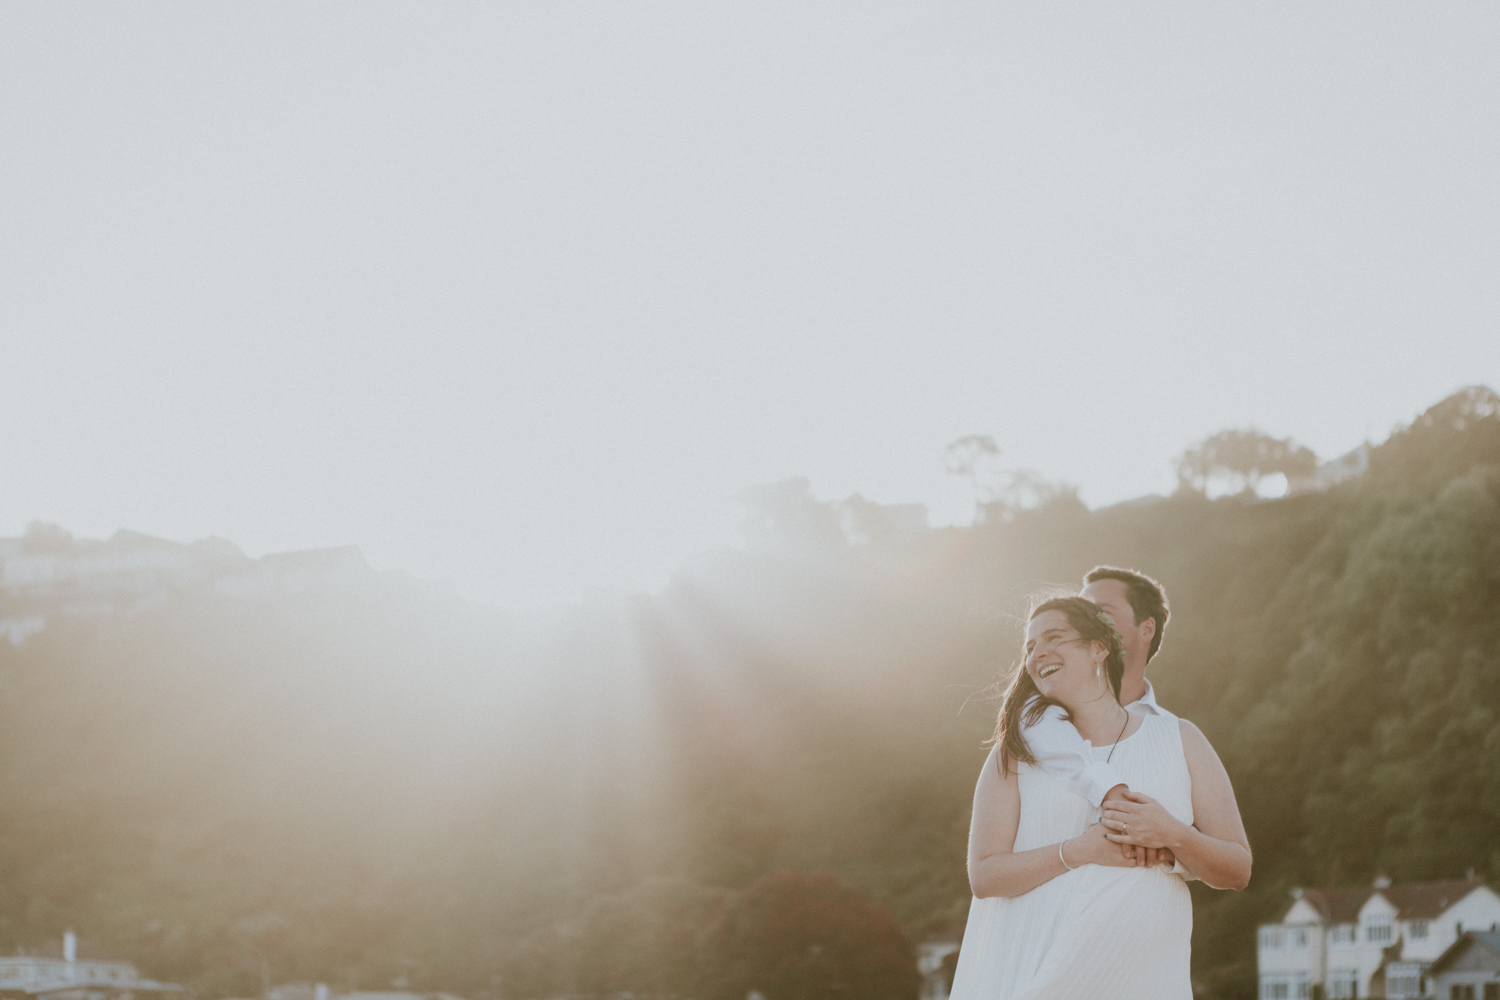 Golden hour is a great time to take wedding photos